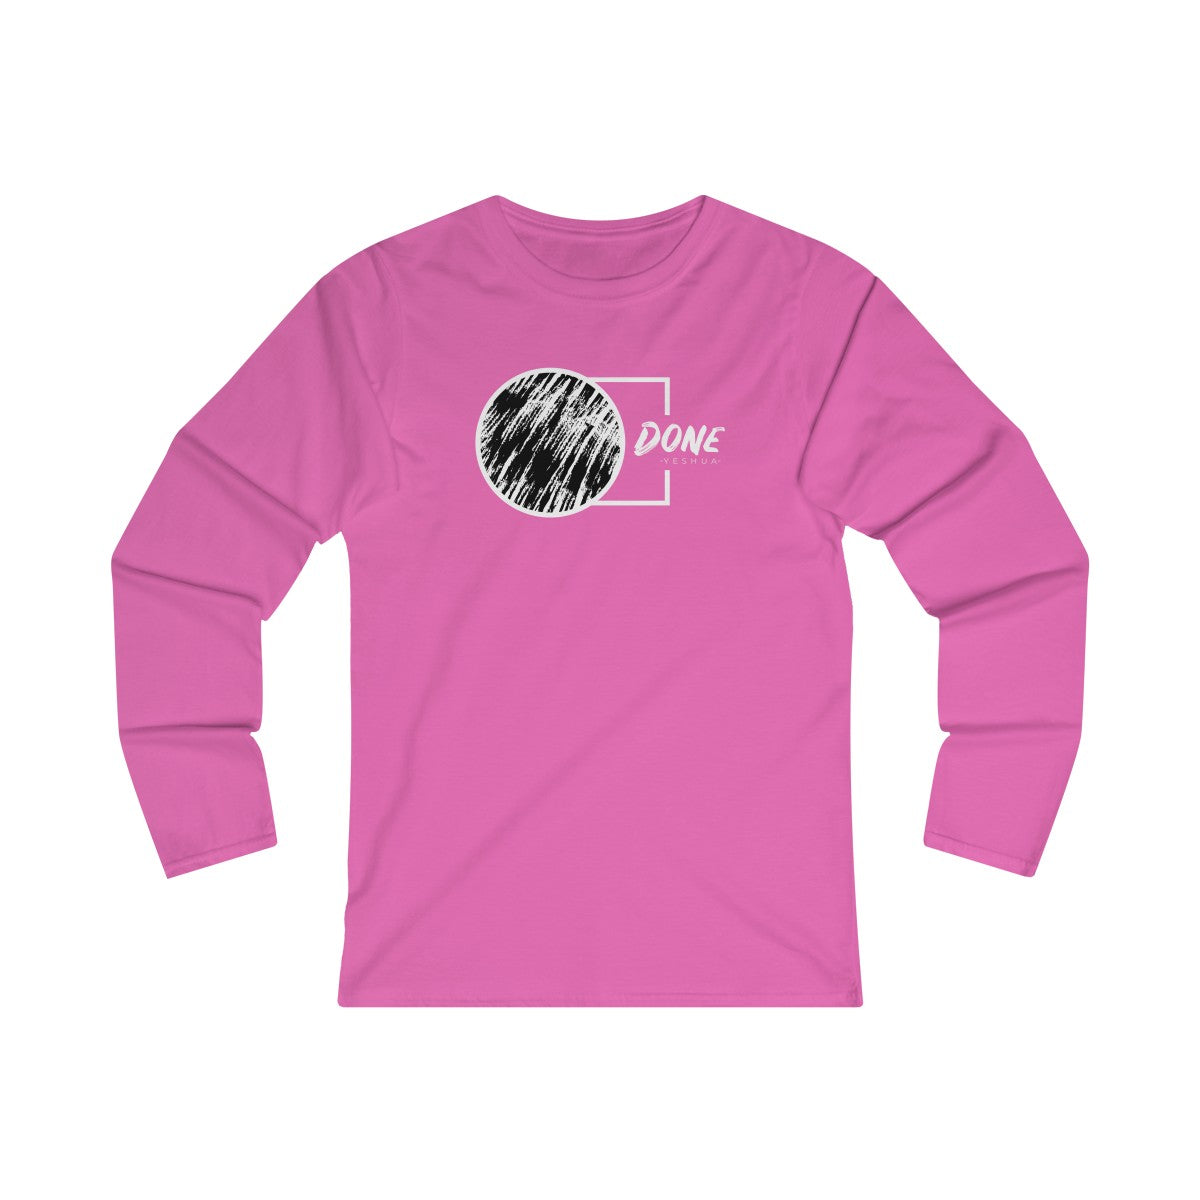 Done By Yeshua Women's Fitted Long Sleeve Tee